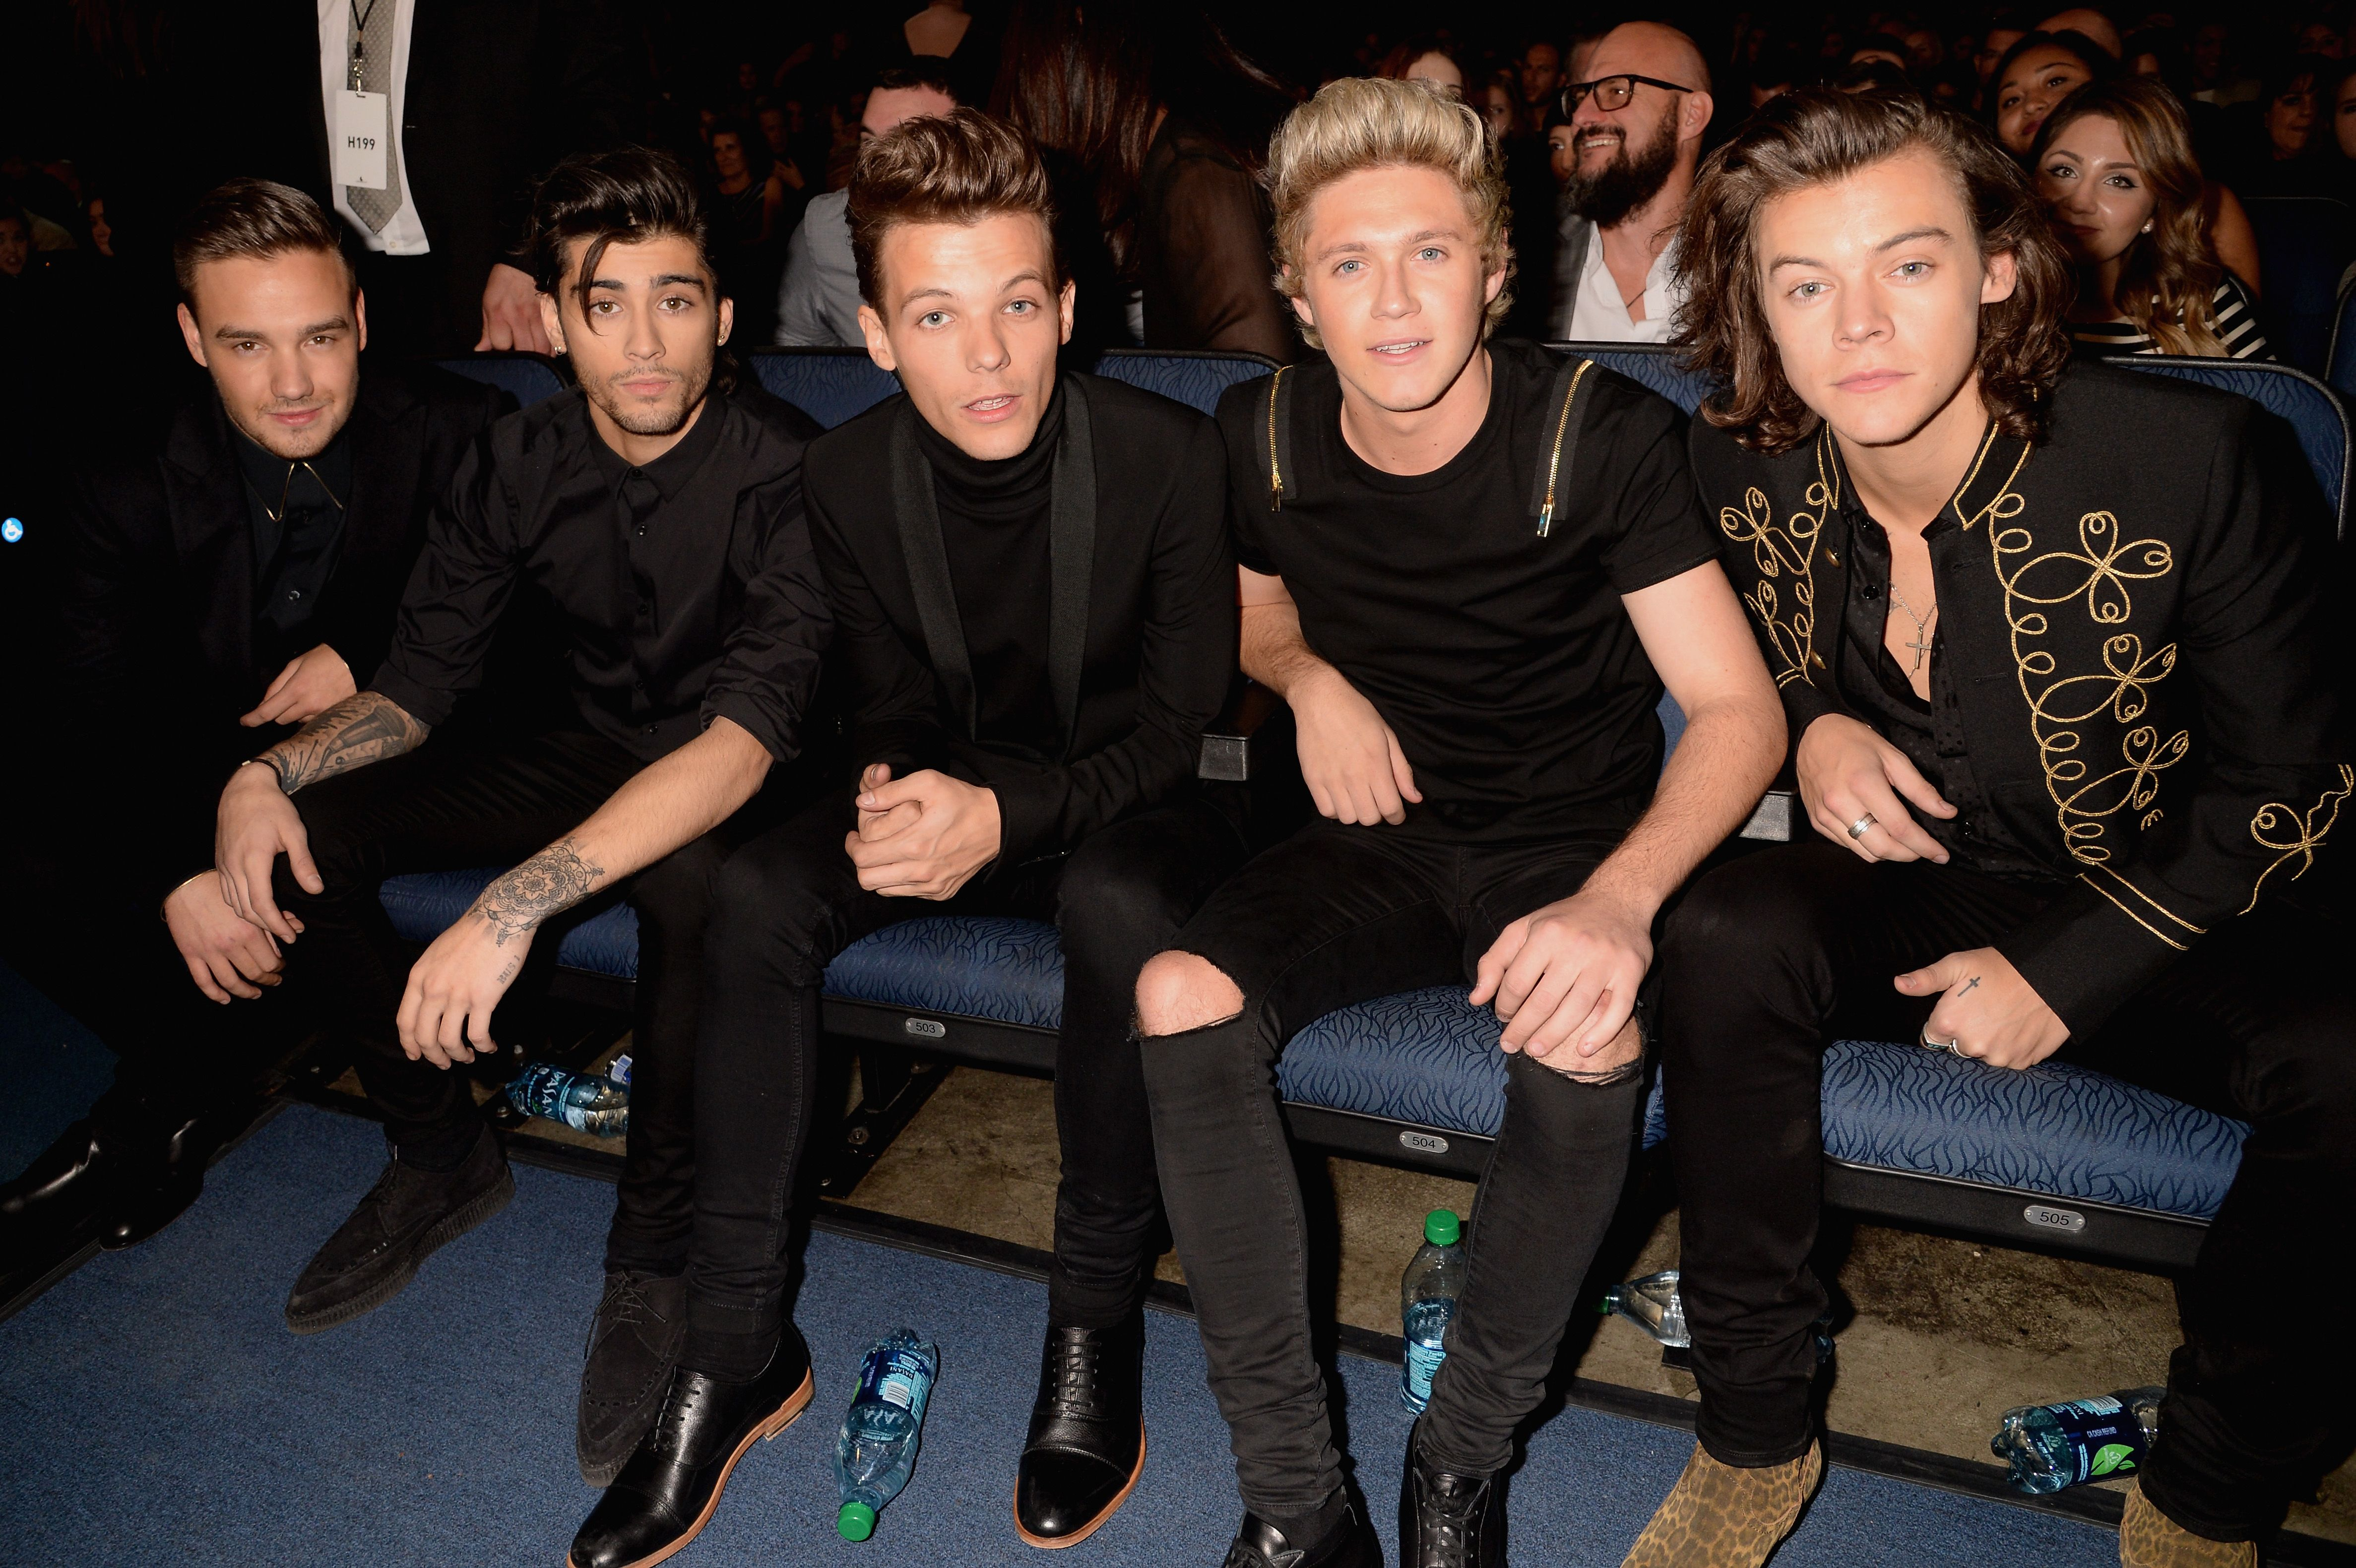 Louis Tomlinson opens up about relationship with One Direction band mates